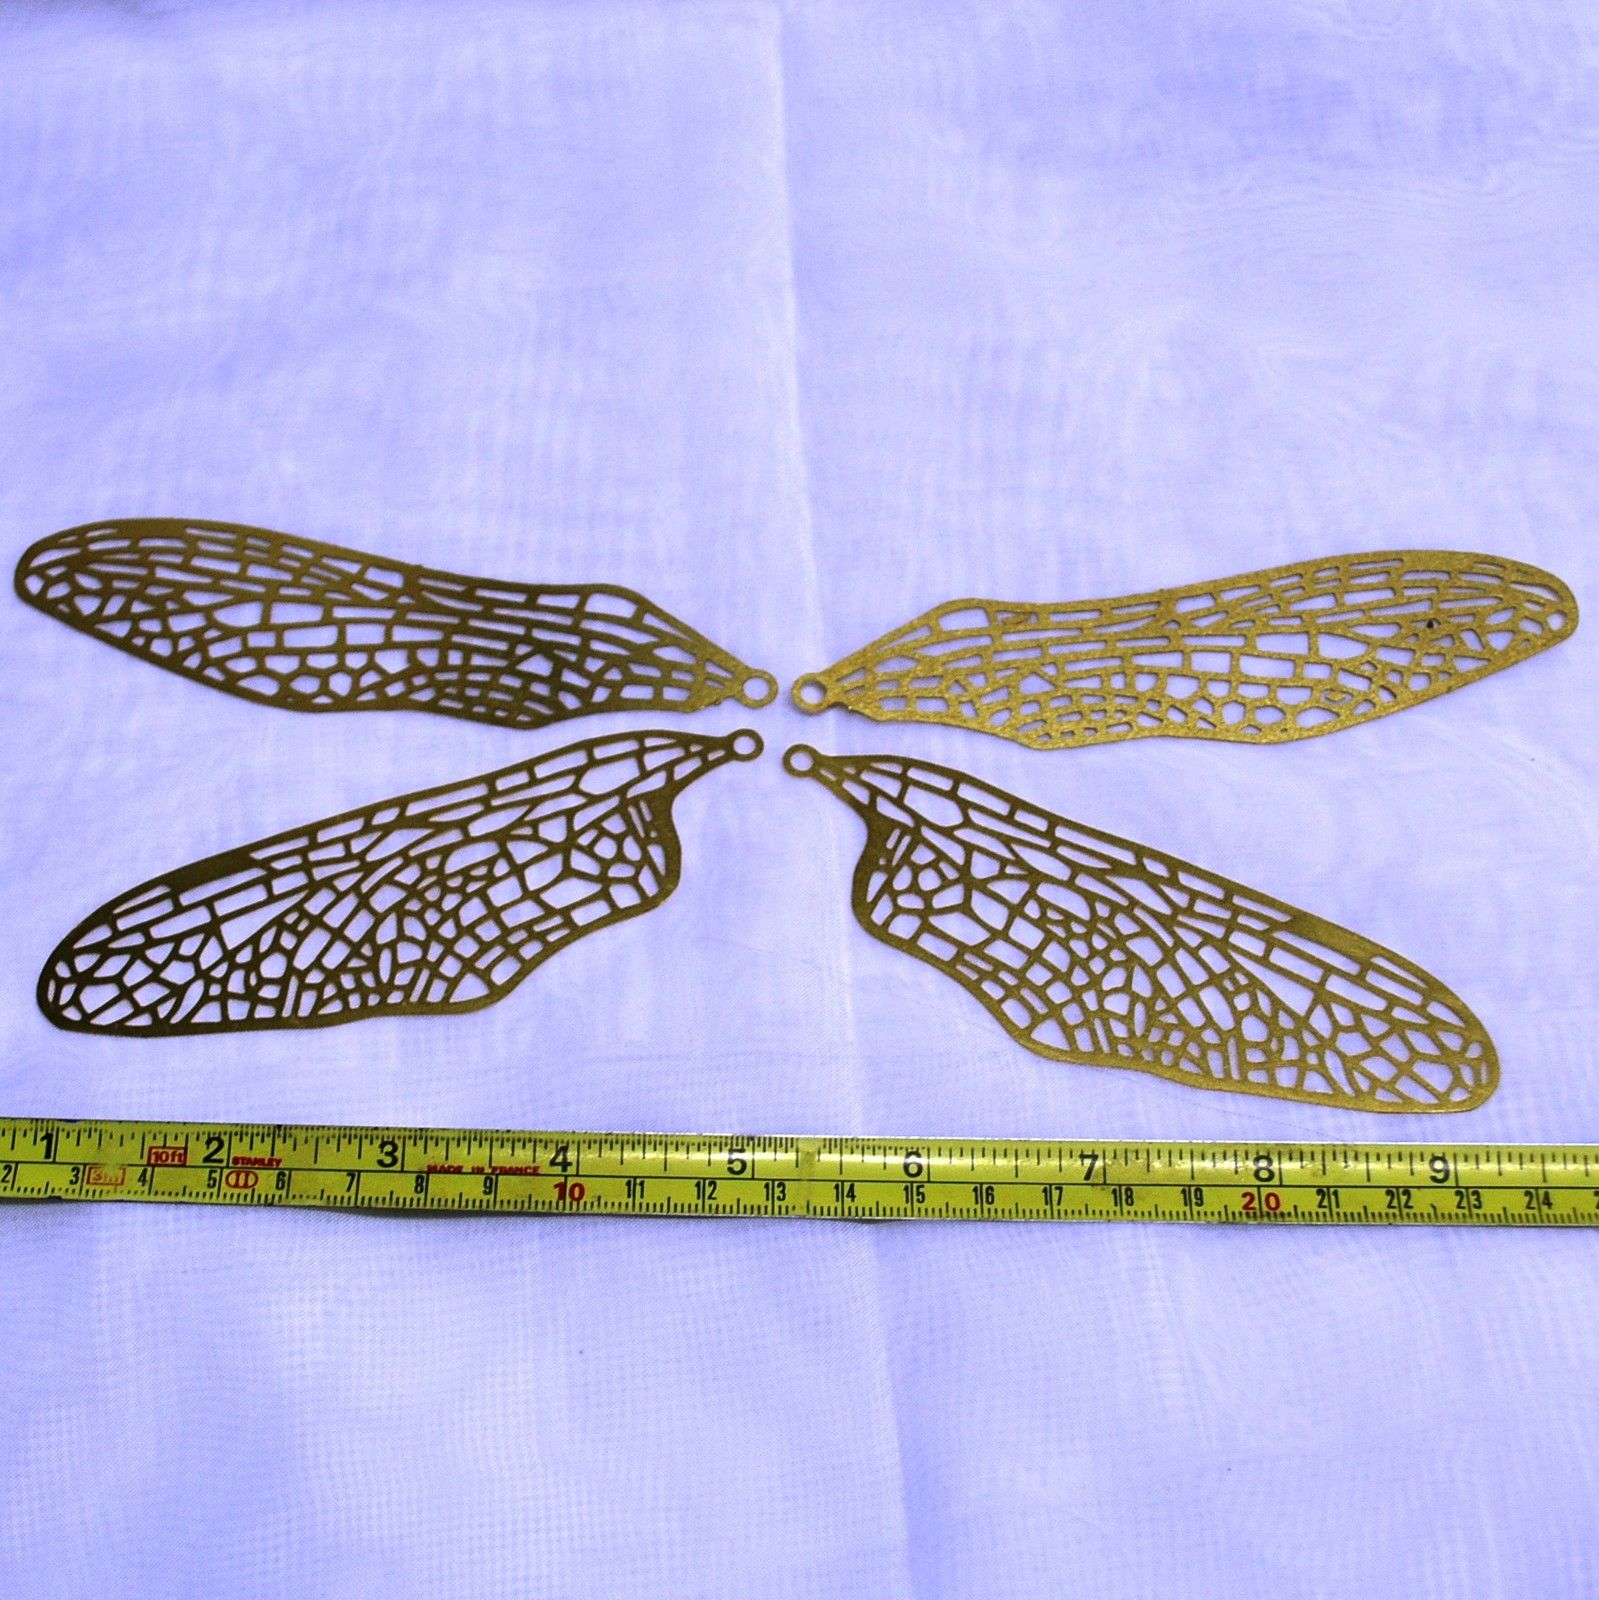 Dragonfly Wing Brass Filigree 1 Set 4 Wings Or 6 Sets 24